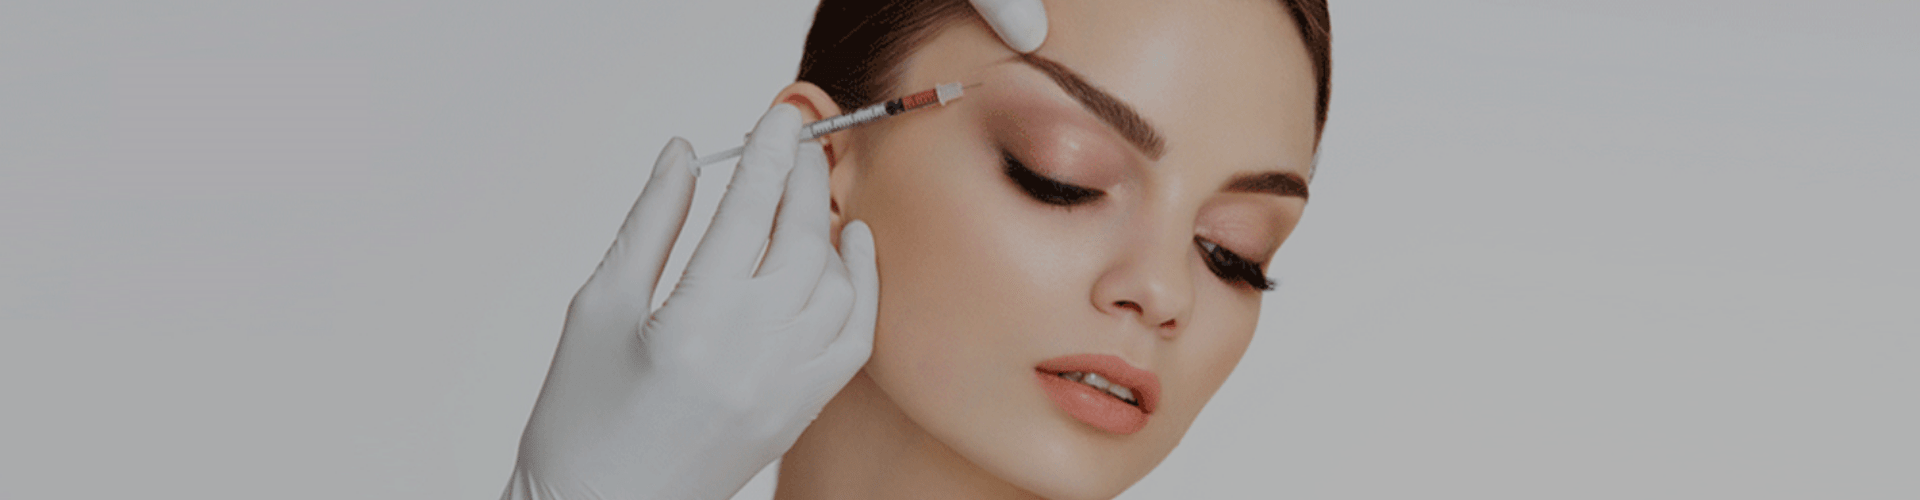 Botox Treatment In Wakad, Pune | Botox & Fillers - Alpha